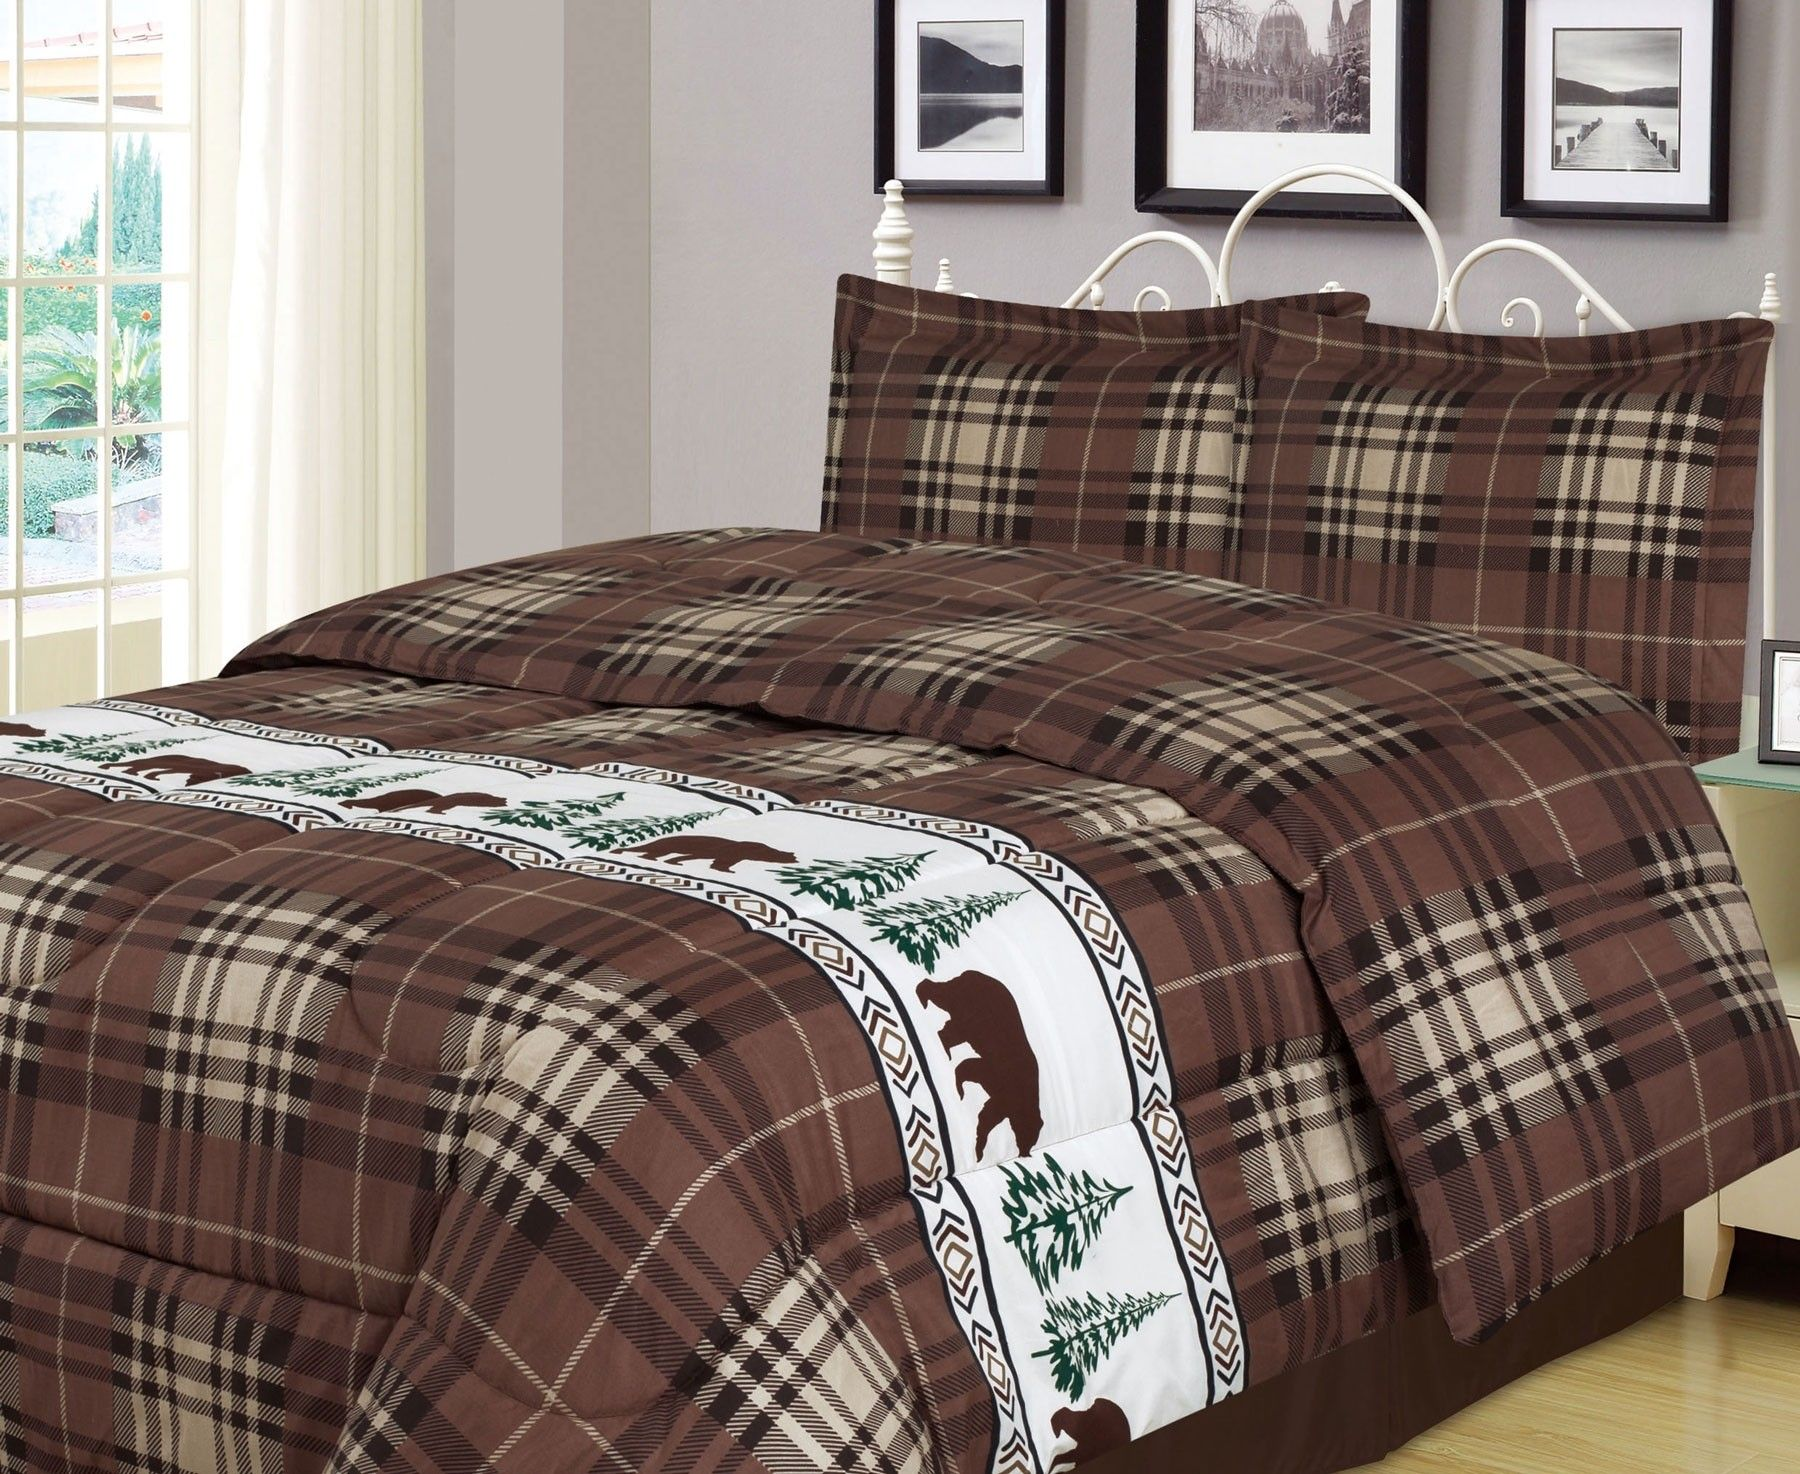 bedspreads wildlife star fabulous full daybed cabin comforter bedroom sets cabins bedding comforters king college sale beach duvet size rustic ski and themed outdoor lodge of covers